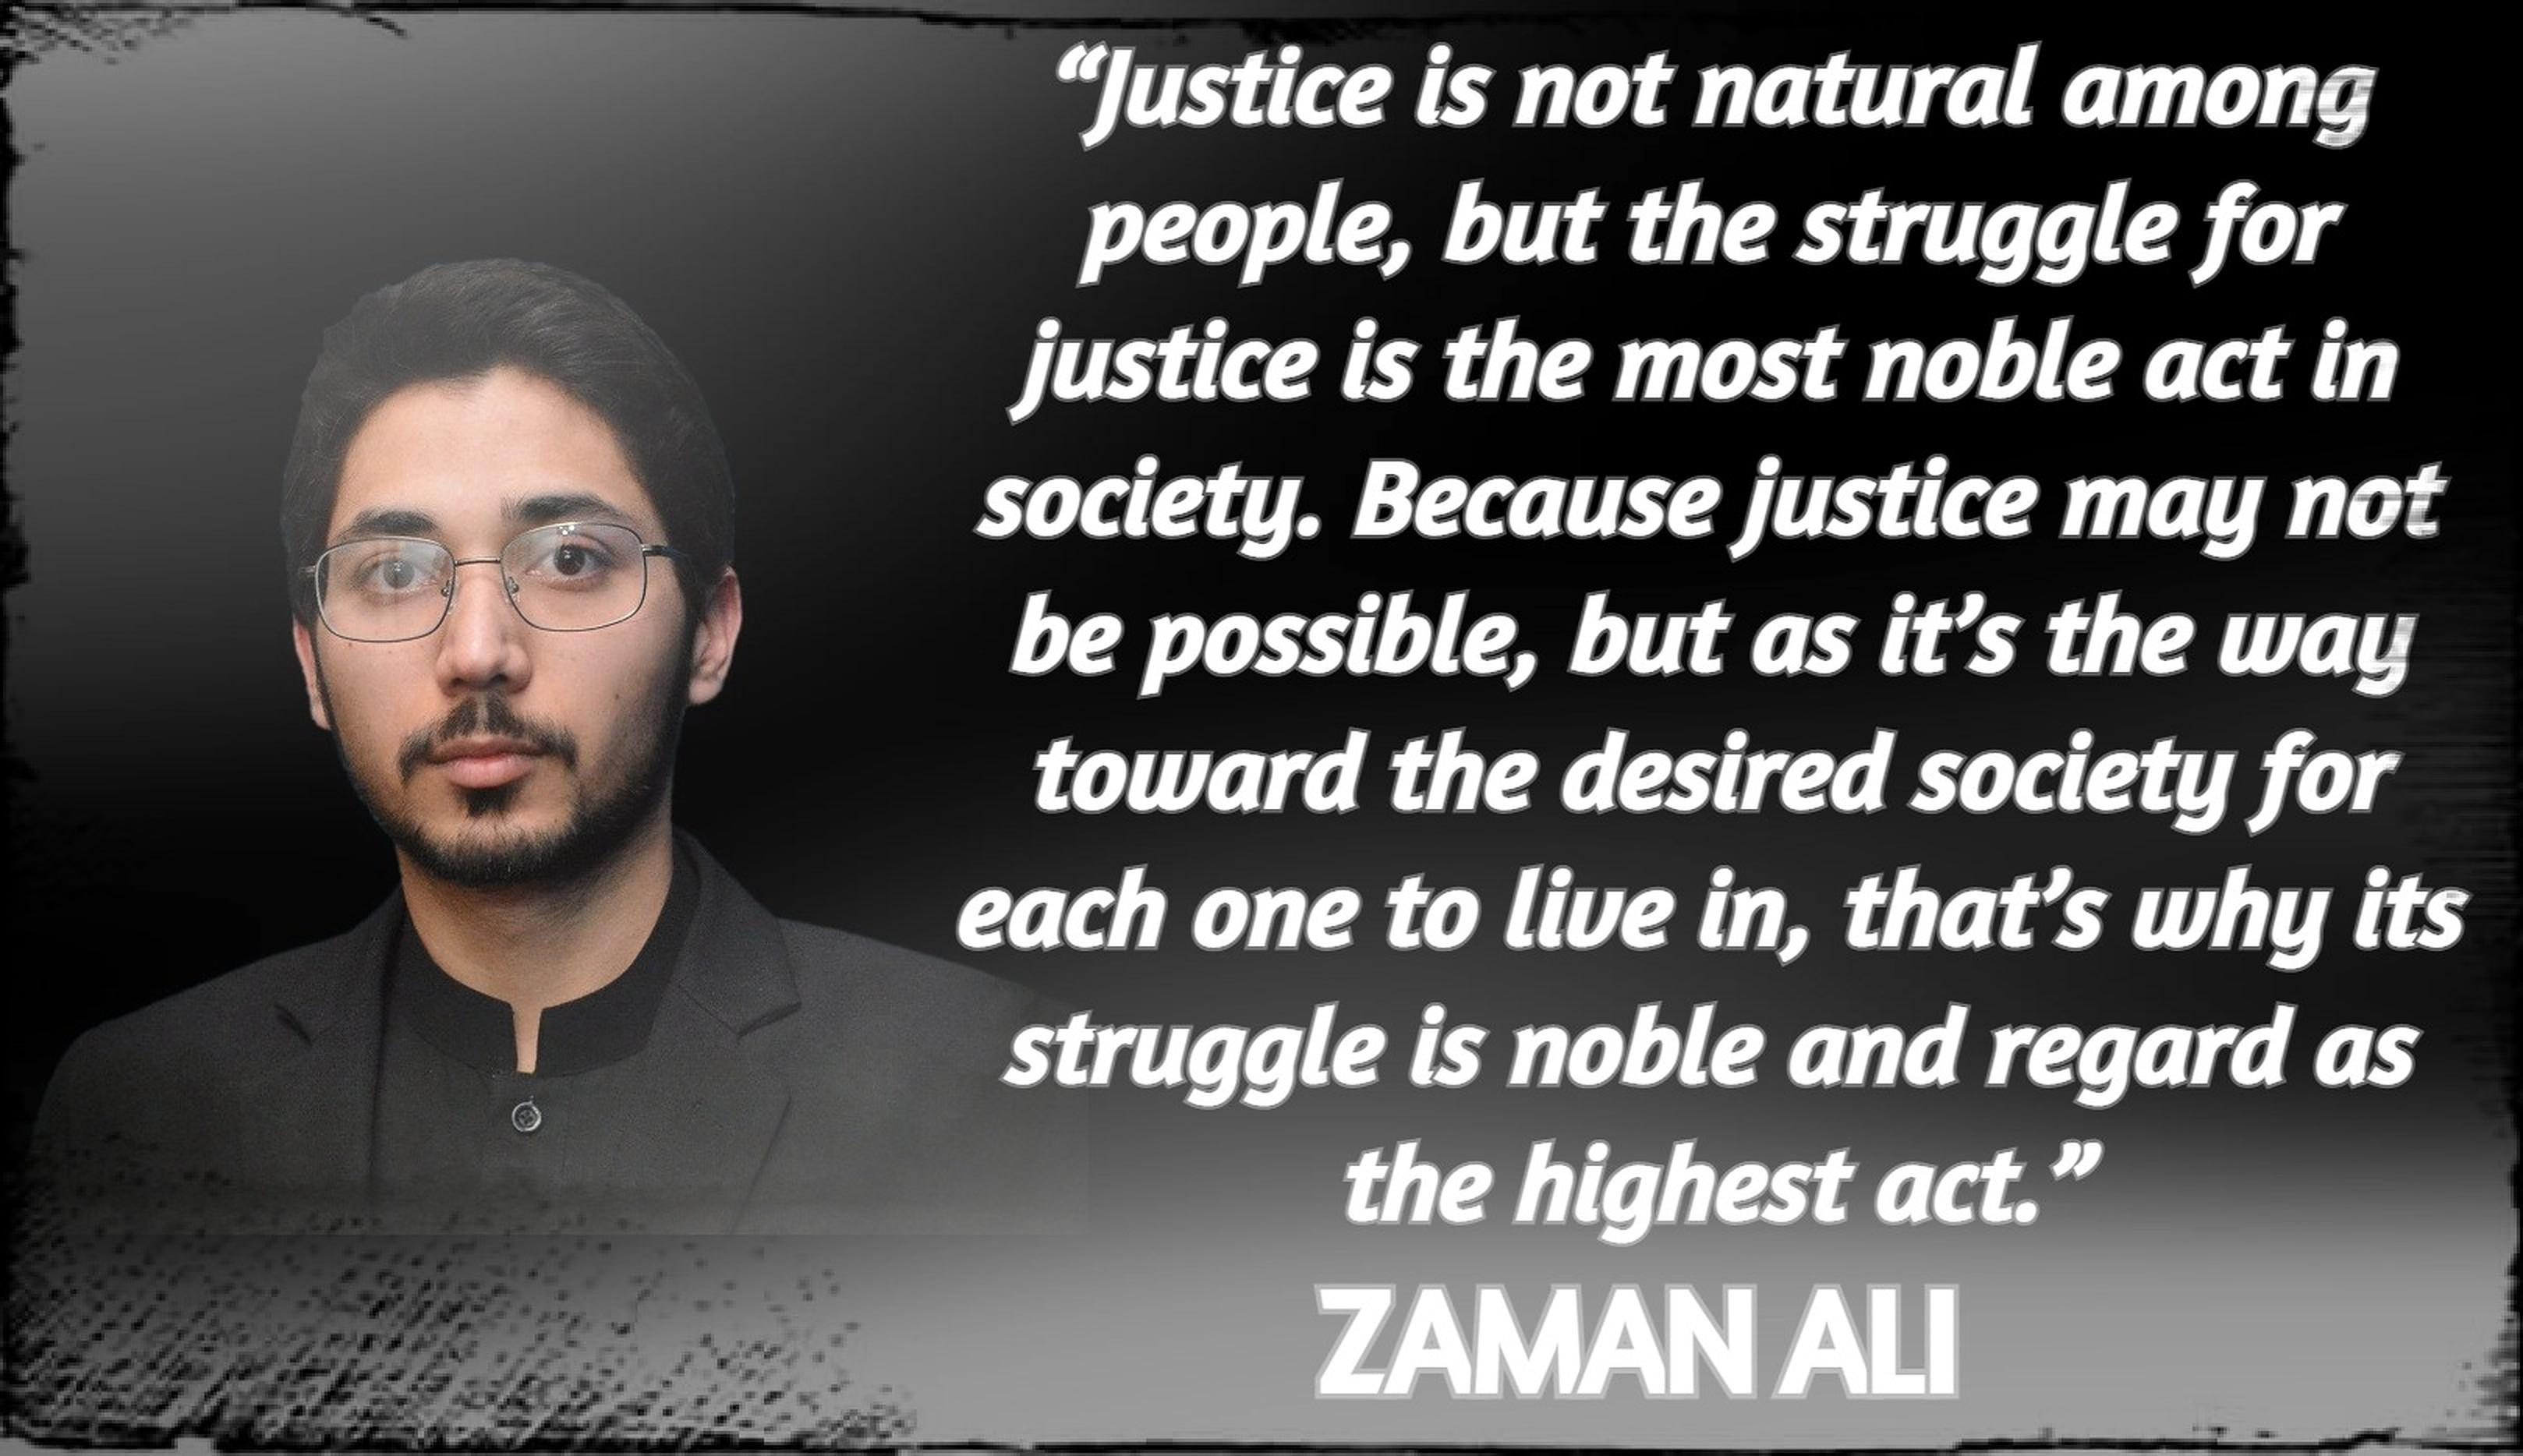 """Justice is not natural among people, but the struggle for justice is the most noble act in society. Because justice may not be possible, but as it's the way toward the desired society for each one to live in, that's why its struggle is noble and regard as the highest act."" ― Zaman Ali [3236 x 1868]"